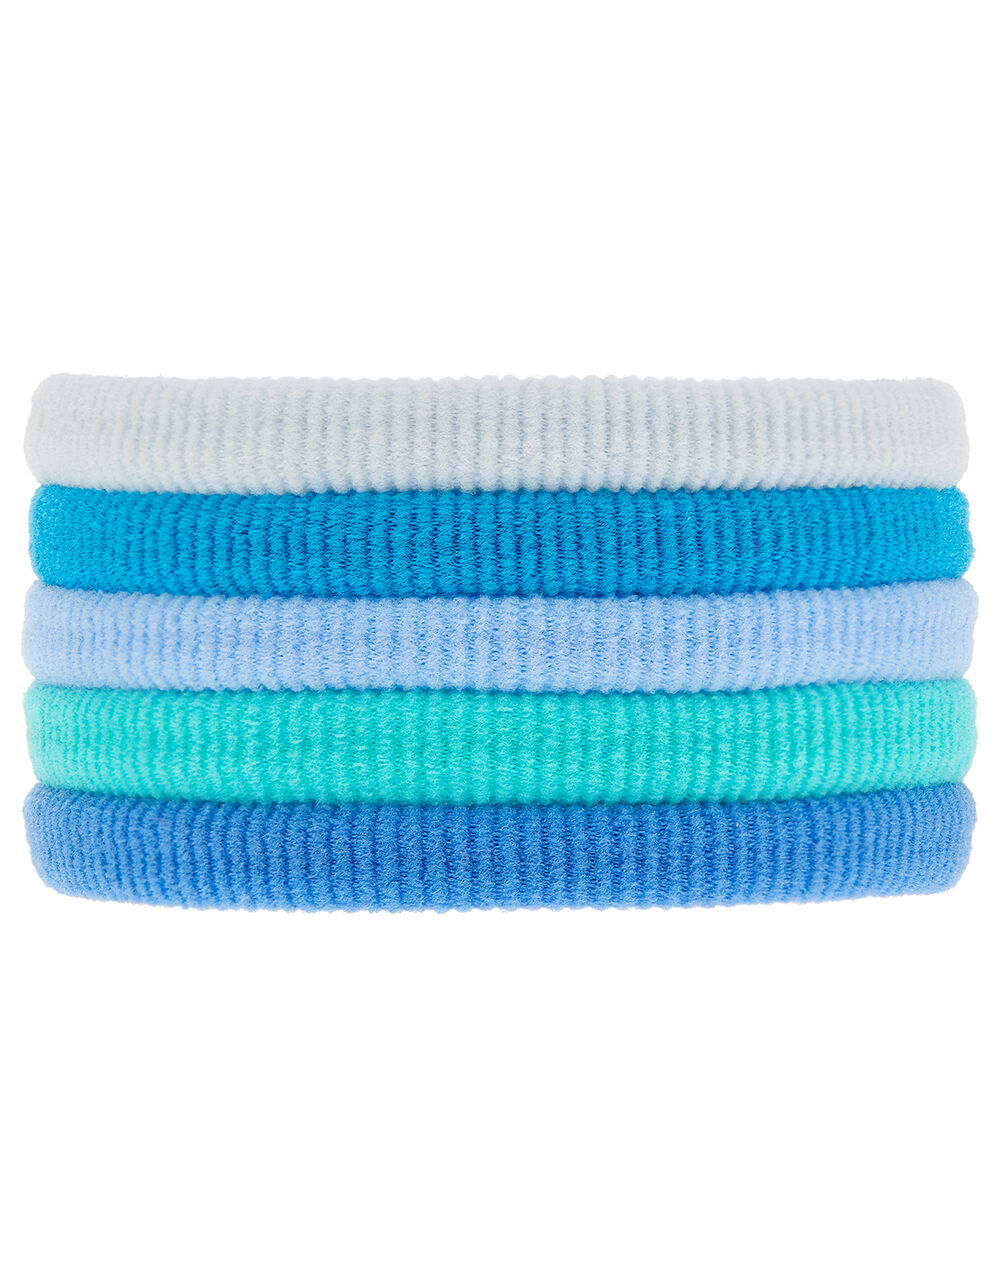 Thick Towelling Hair Band Multipack, , large